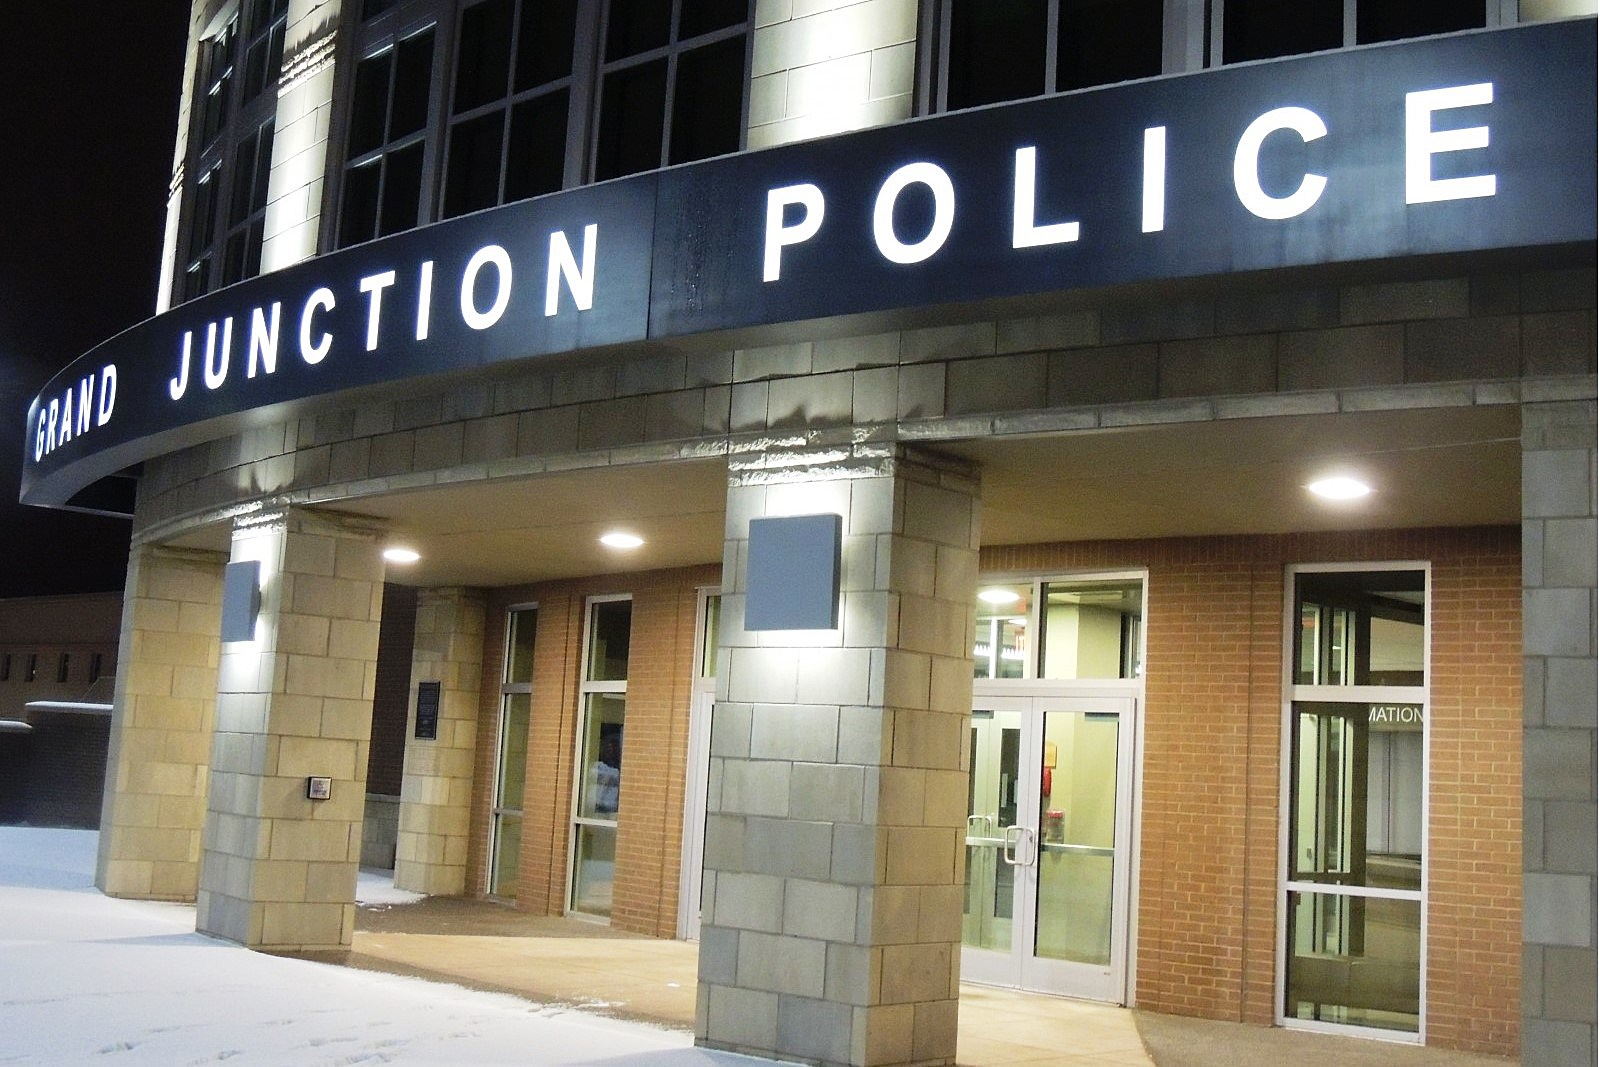 Grand Junction Police Department building